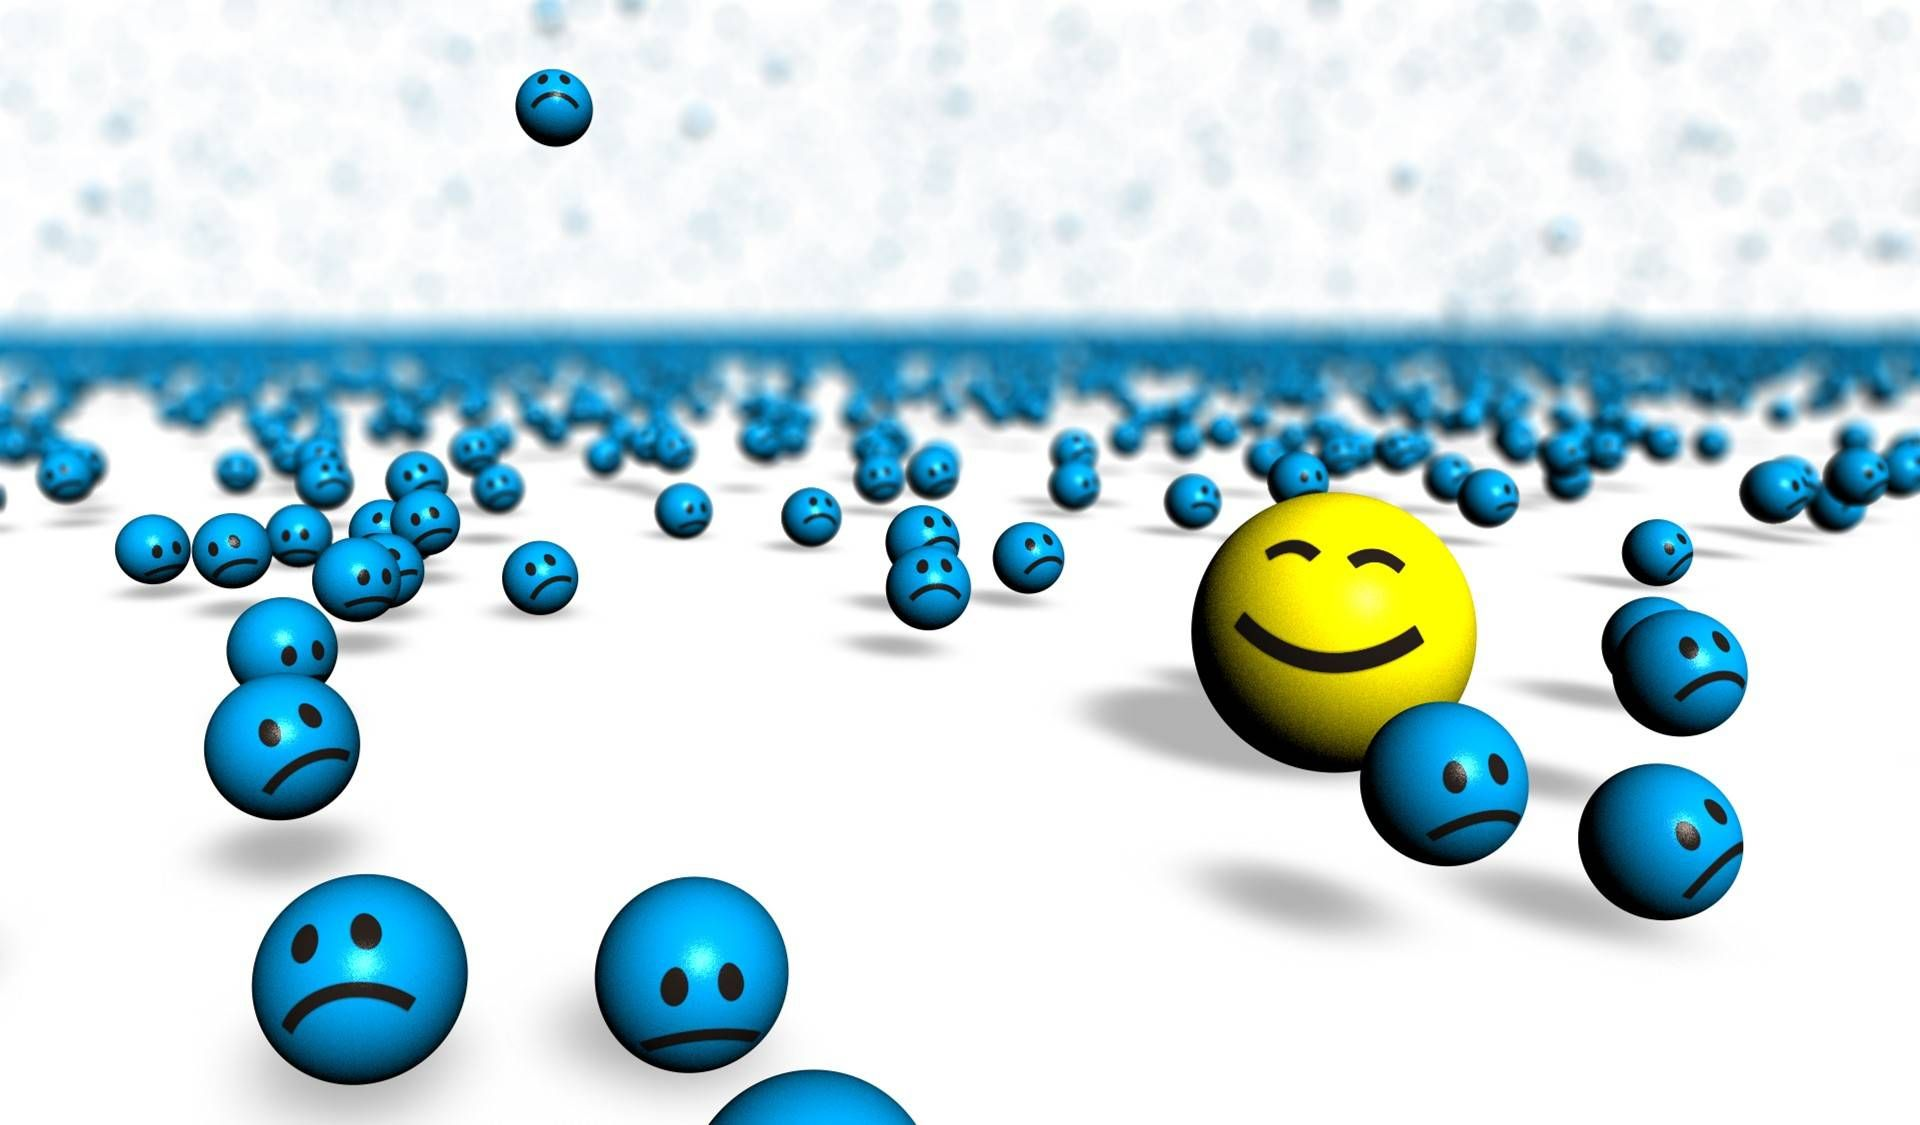 Wallpapers84 Daily Update Fresh Images And Smiley Face Hd